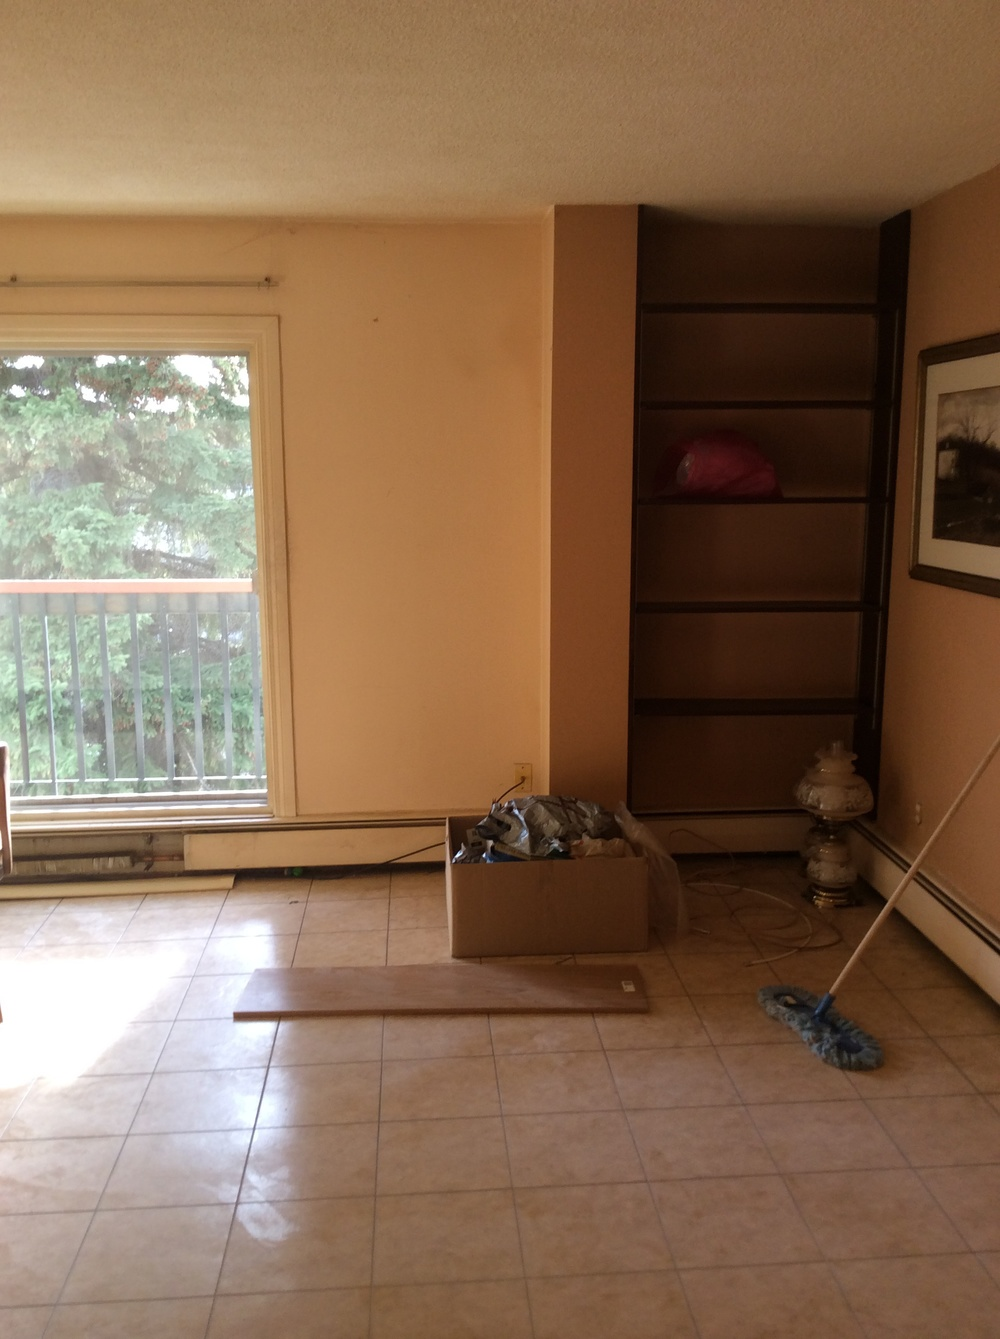 Inglewood+Condo+Livingroom+Storage+Before.JPG